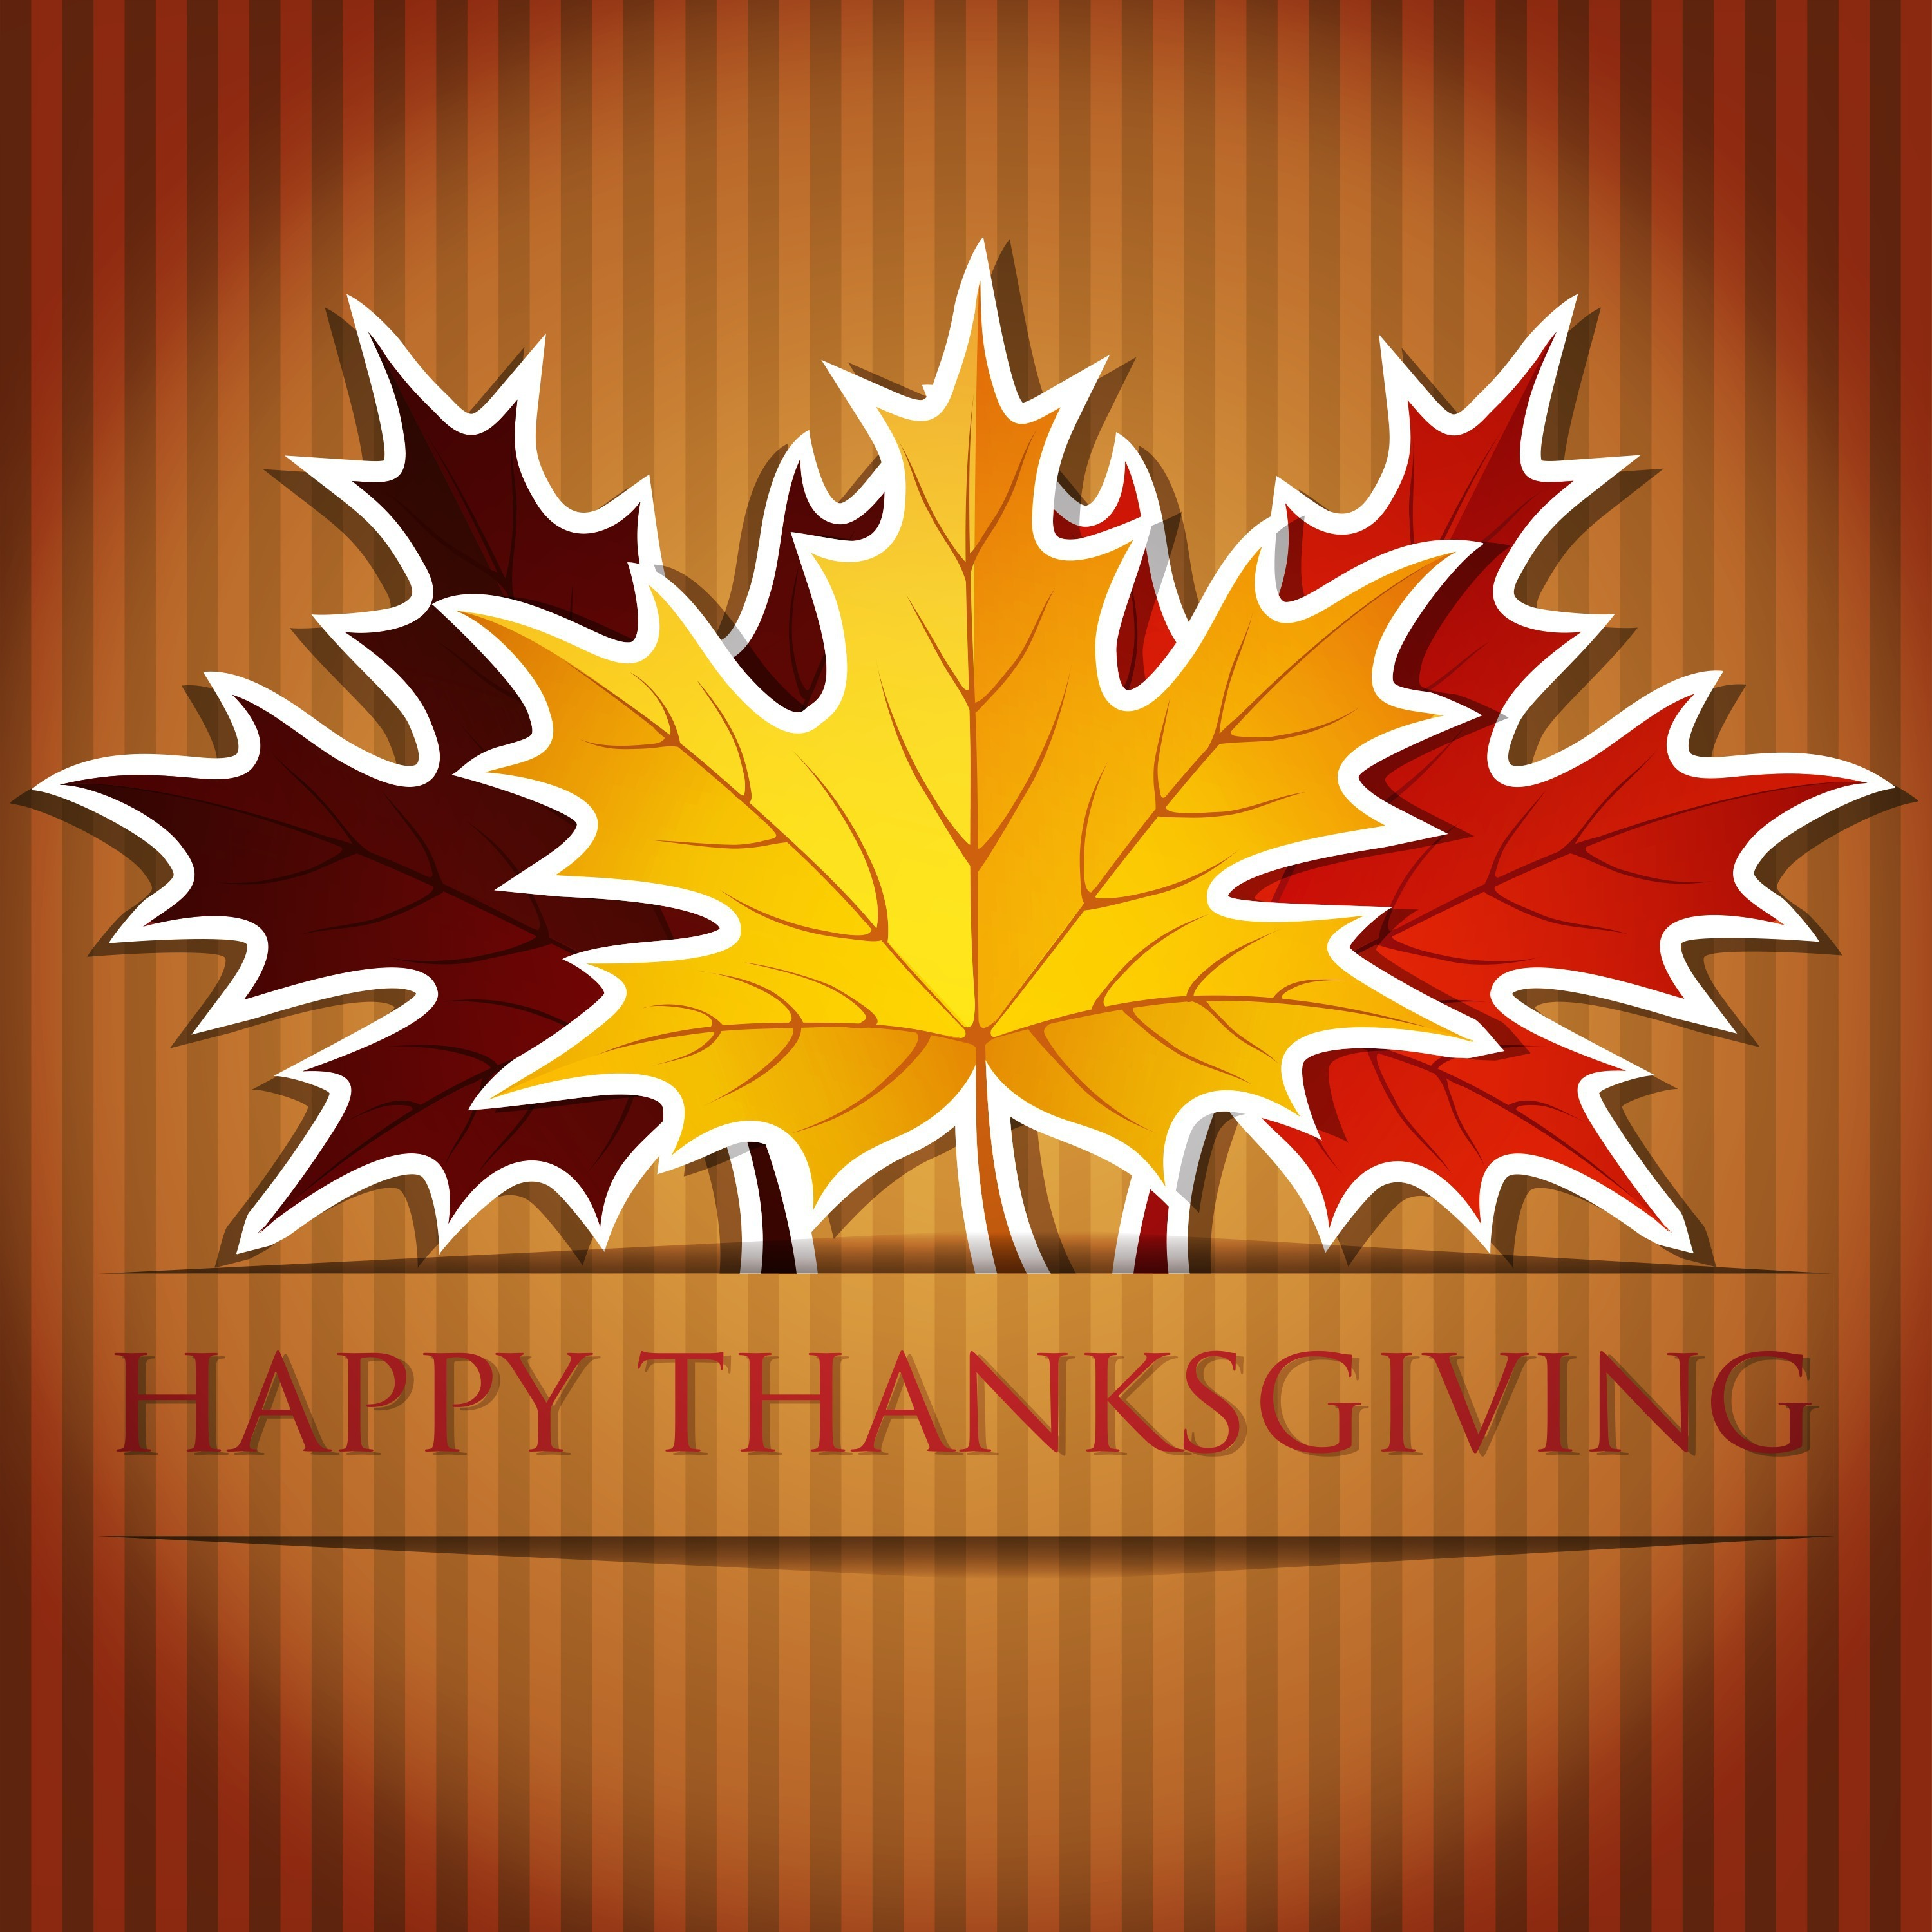 3733e957bea3c945b3ed_Thanksgiving_Leaves_graphic.jpg